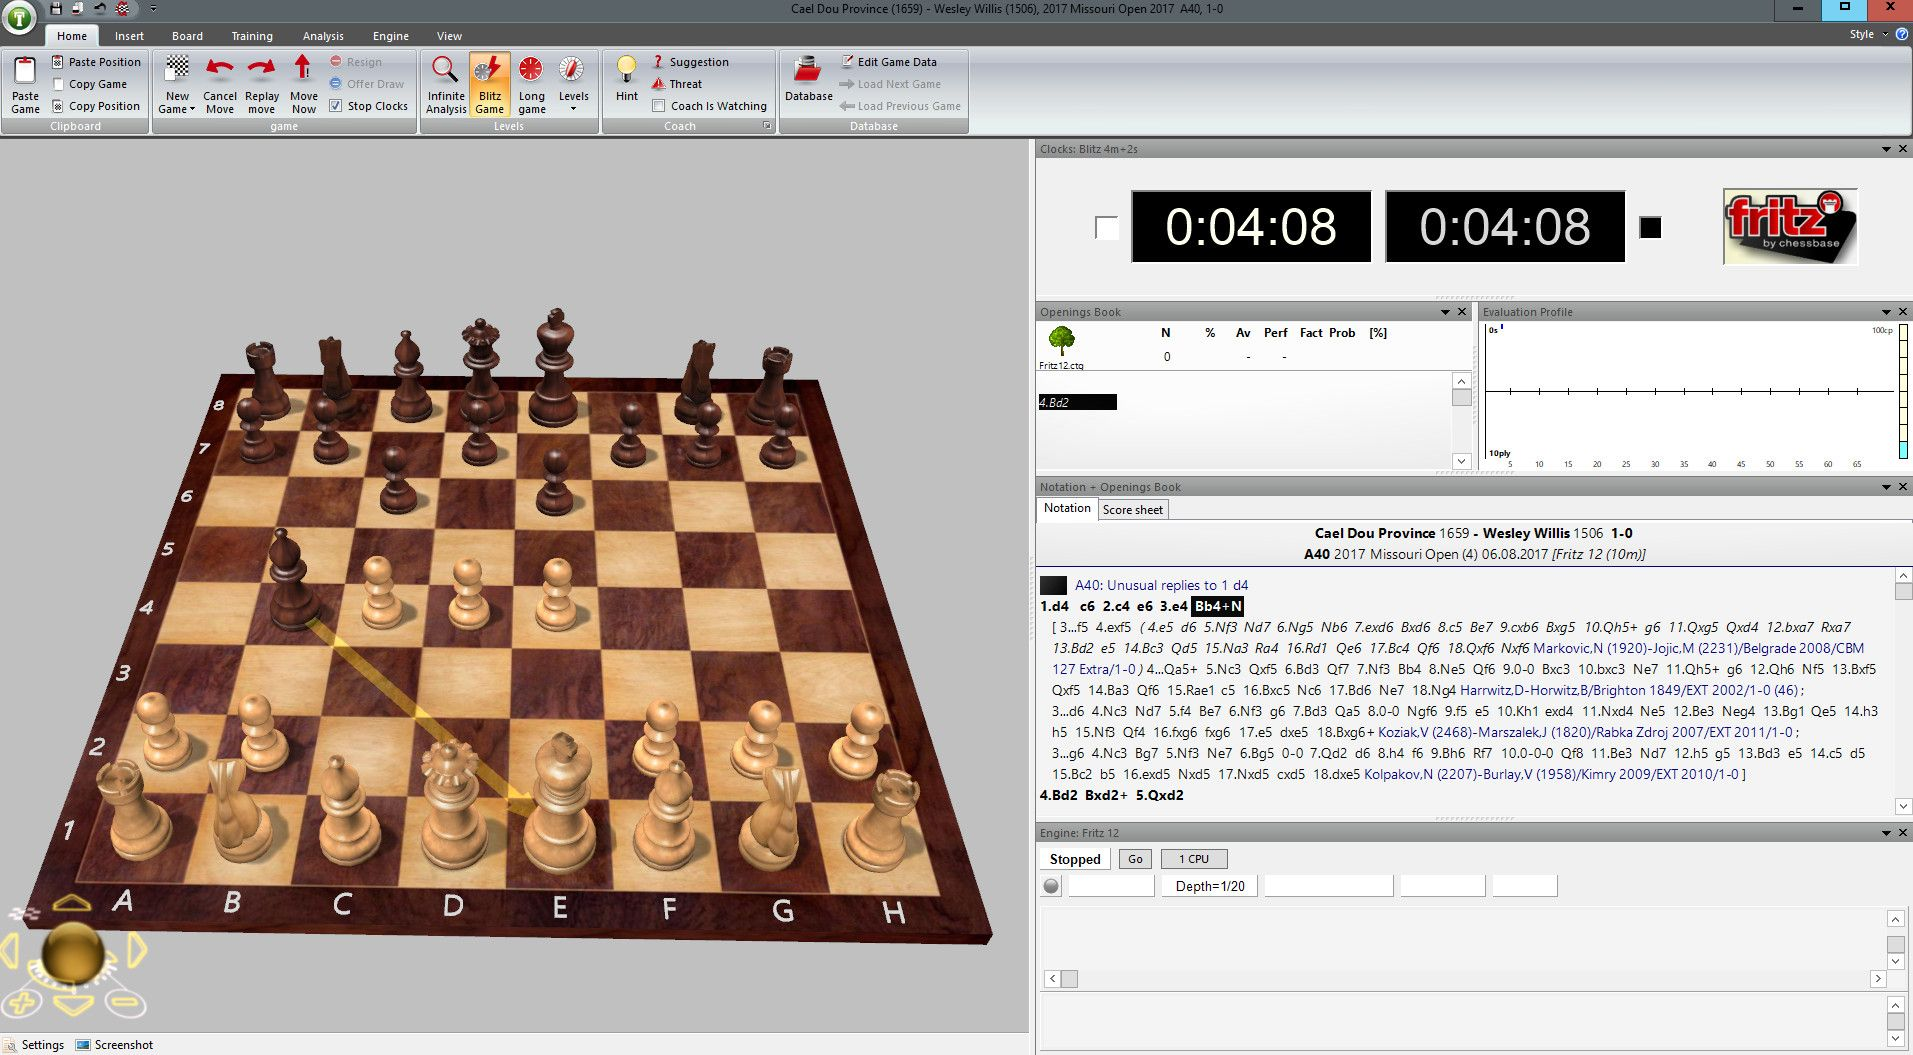 My Favorite Computer Analysis Software  What is yours? - Chess